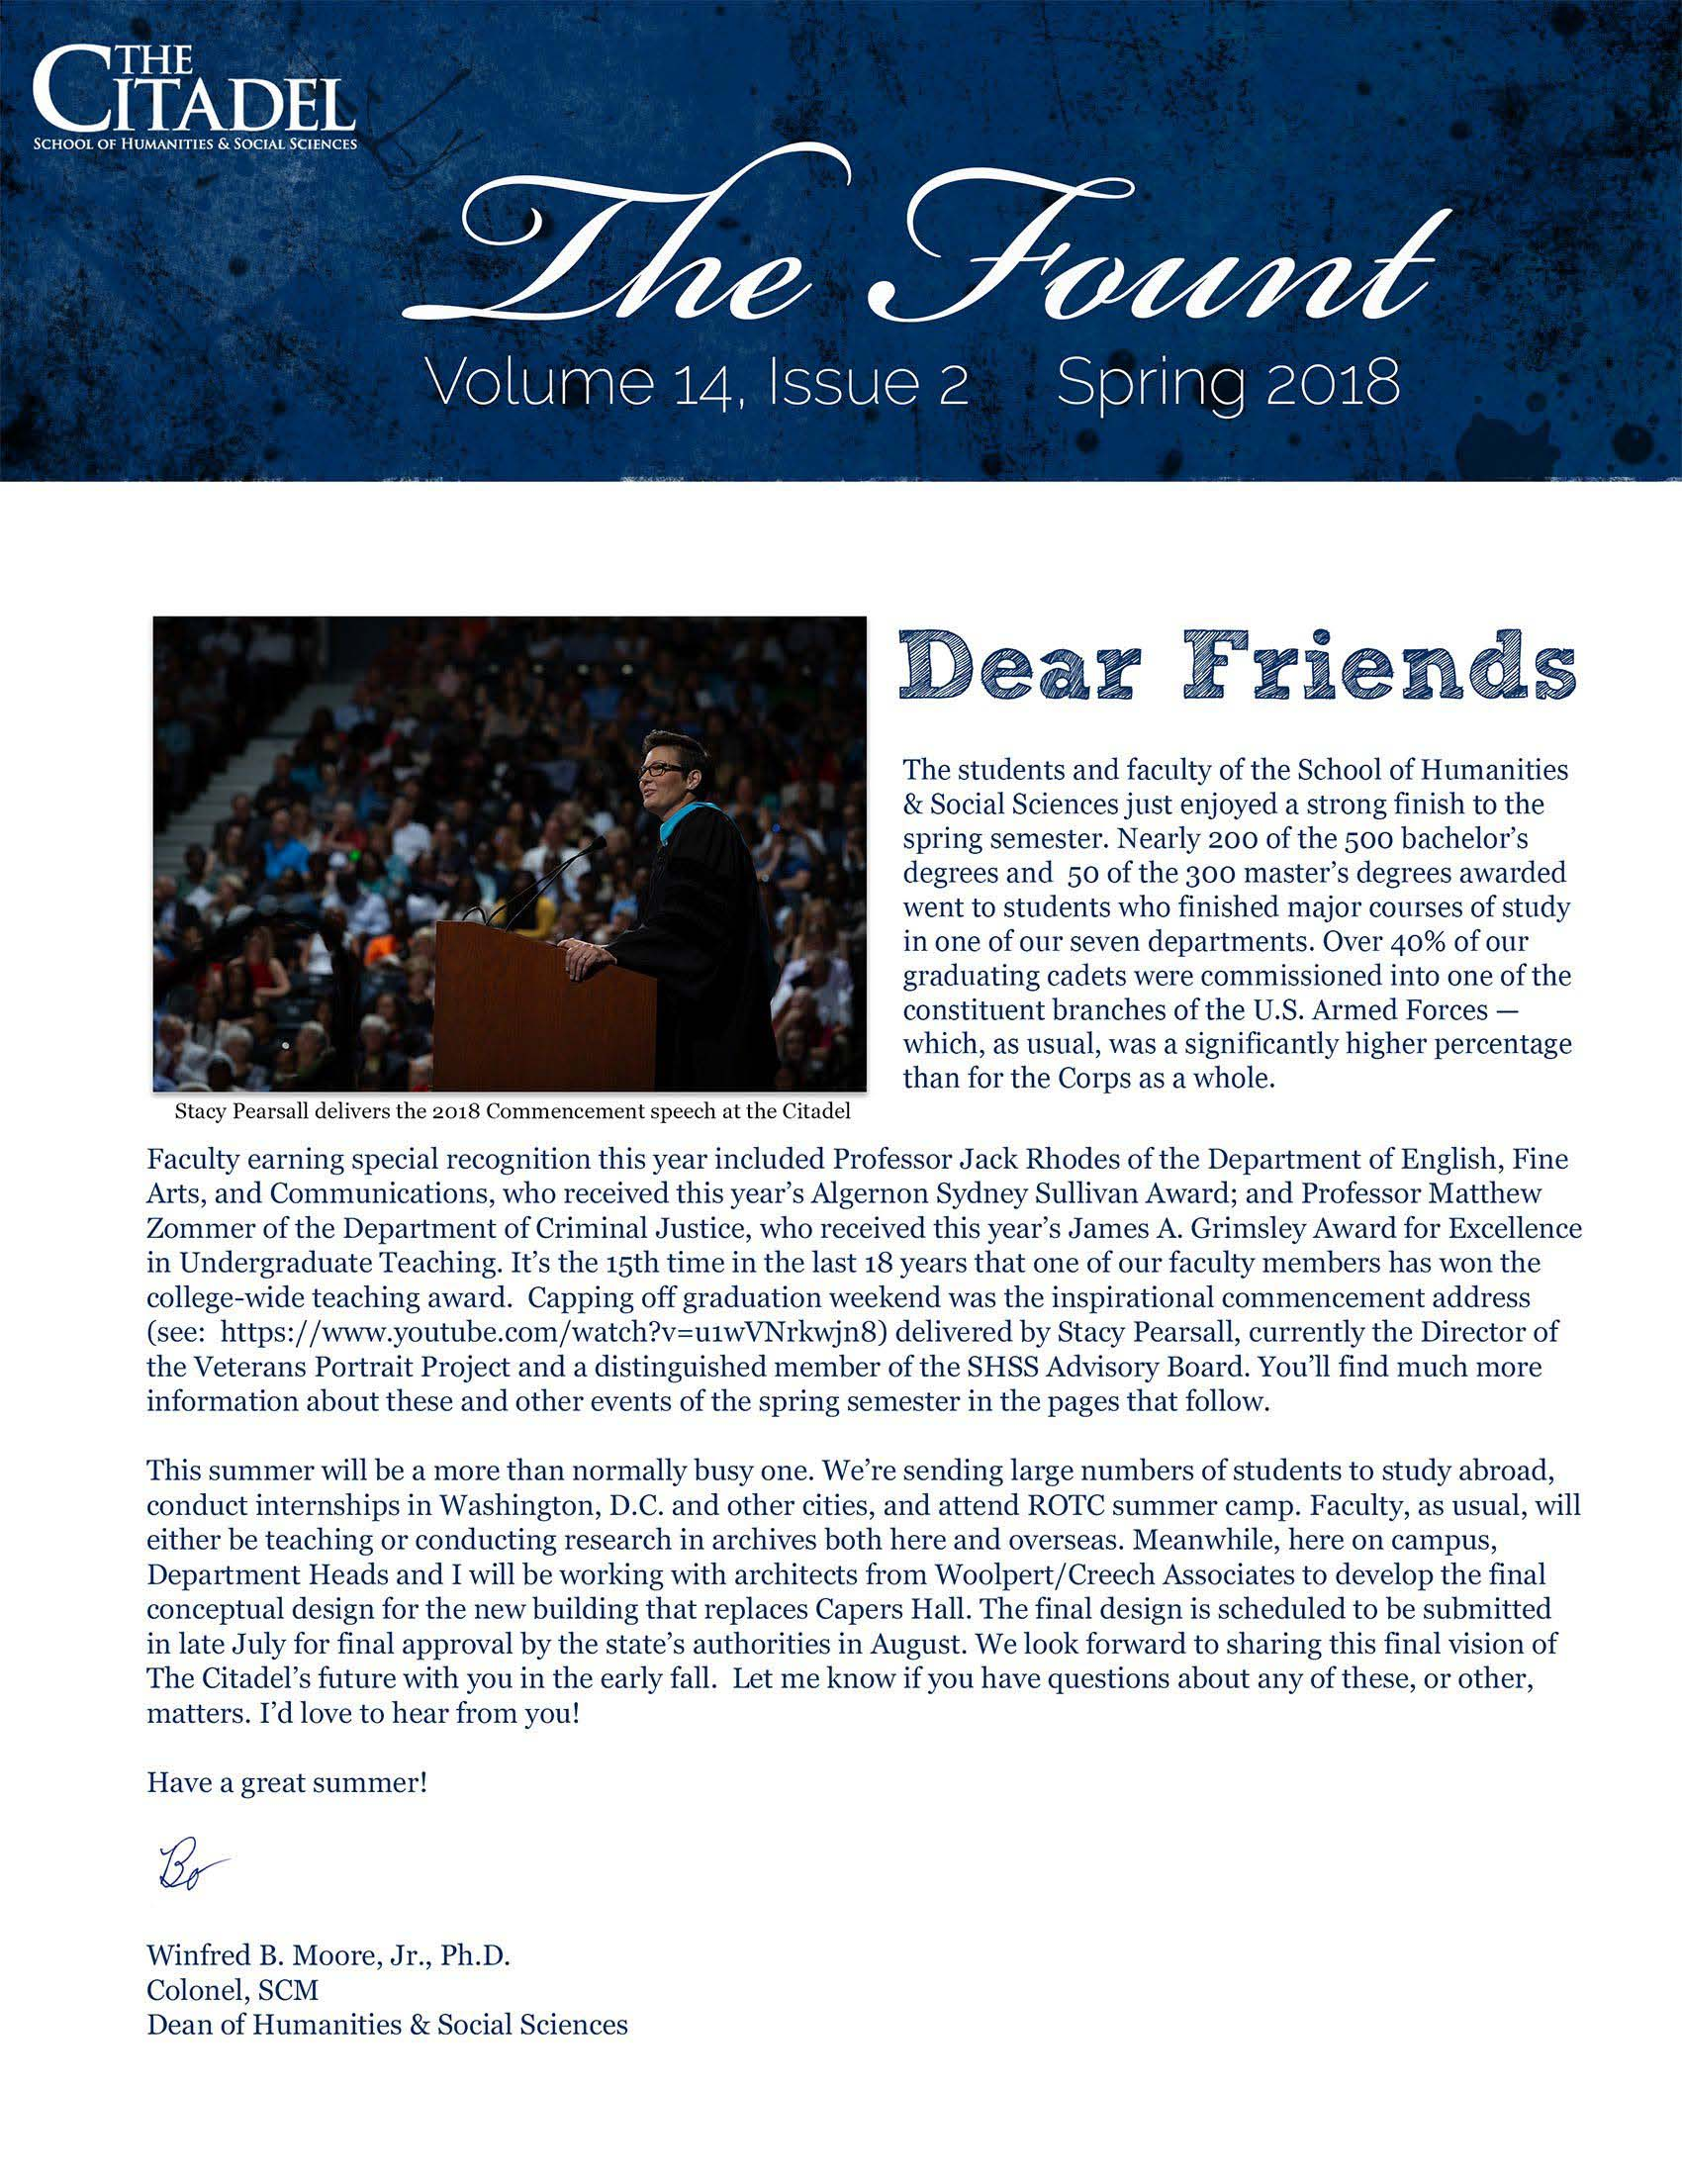 The Fount Volume 14 Issue 2